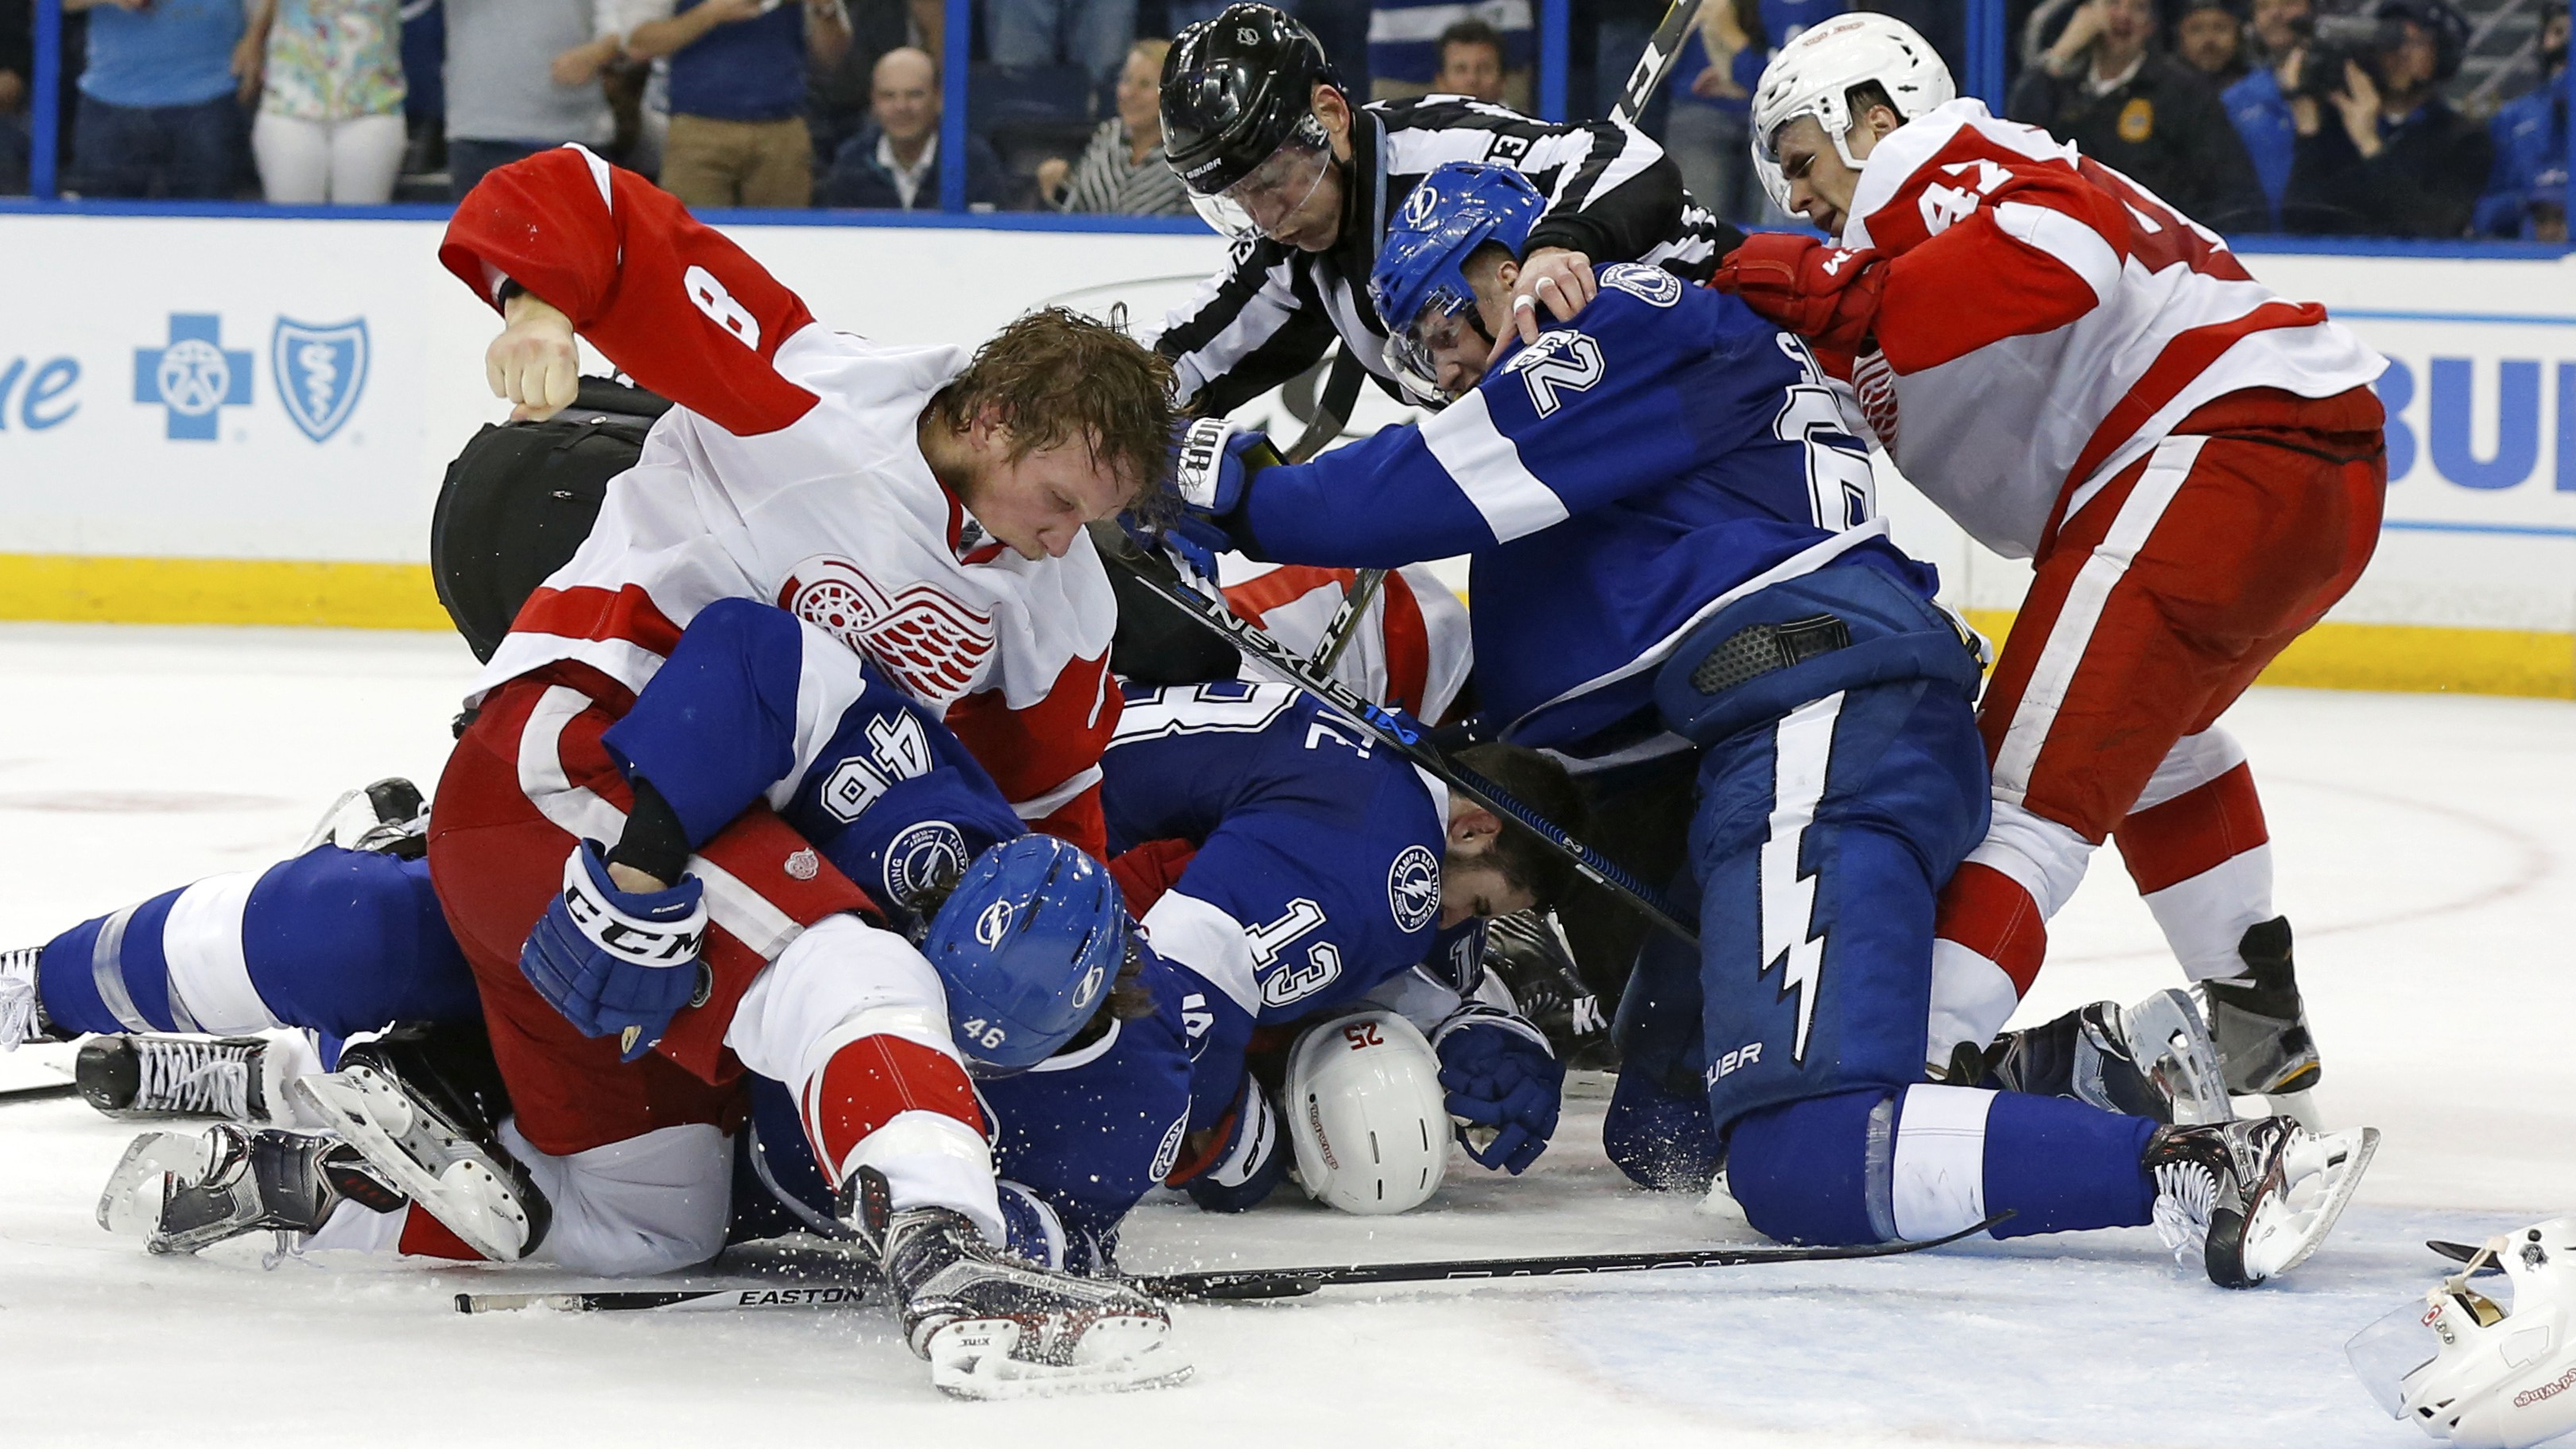 Red Wings Vs Lightning Live Stream How To Watch Game 3 Online Heavy Com